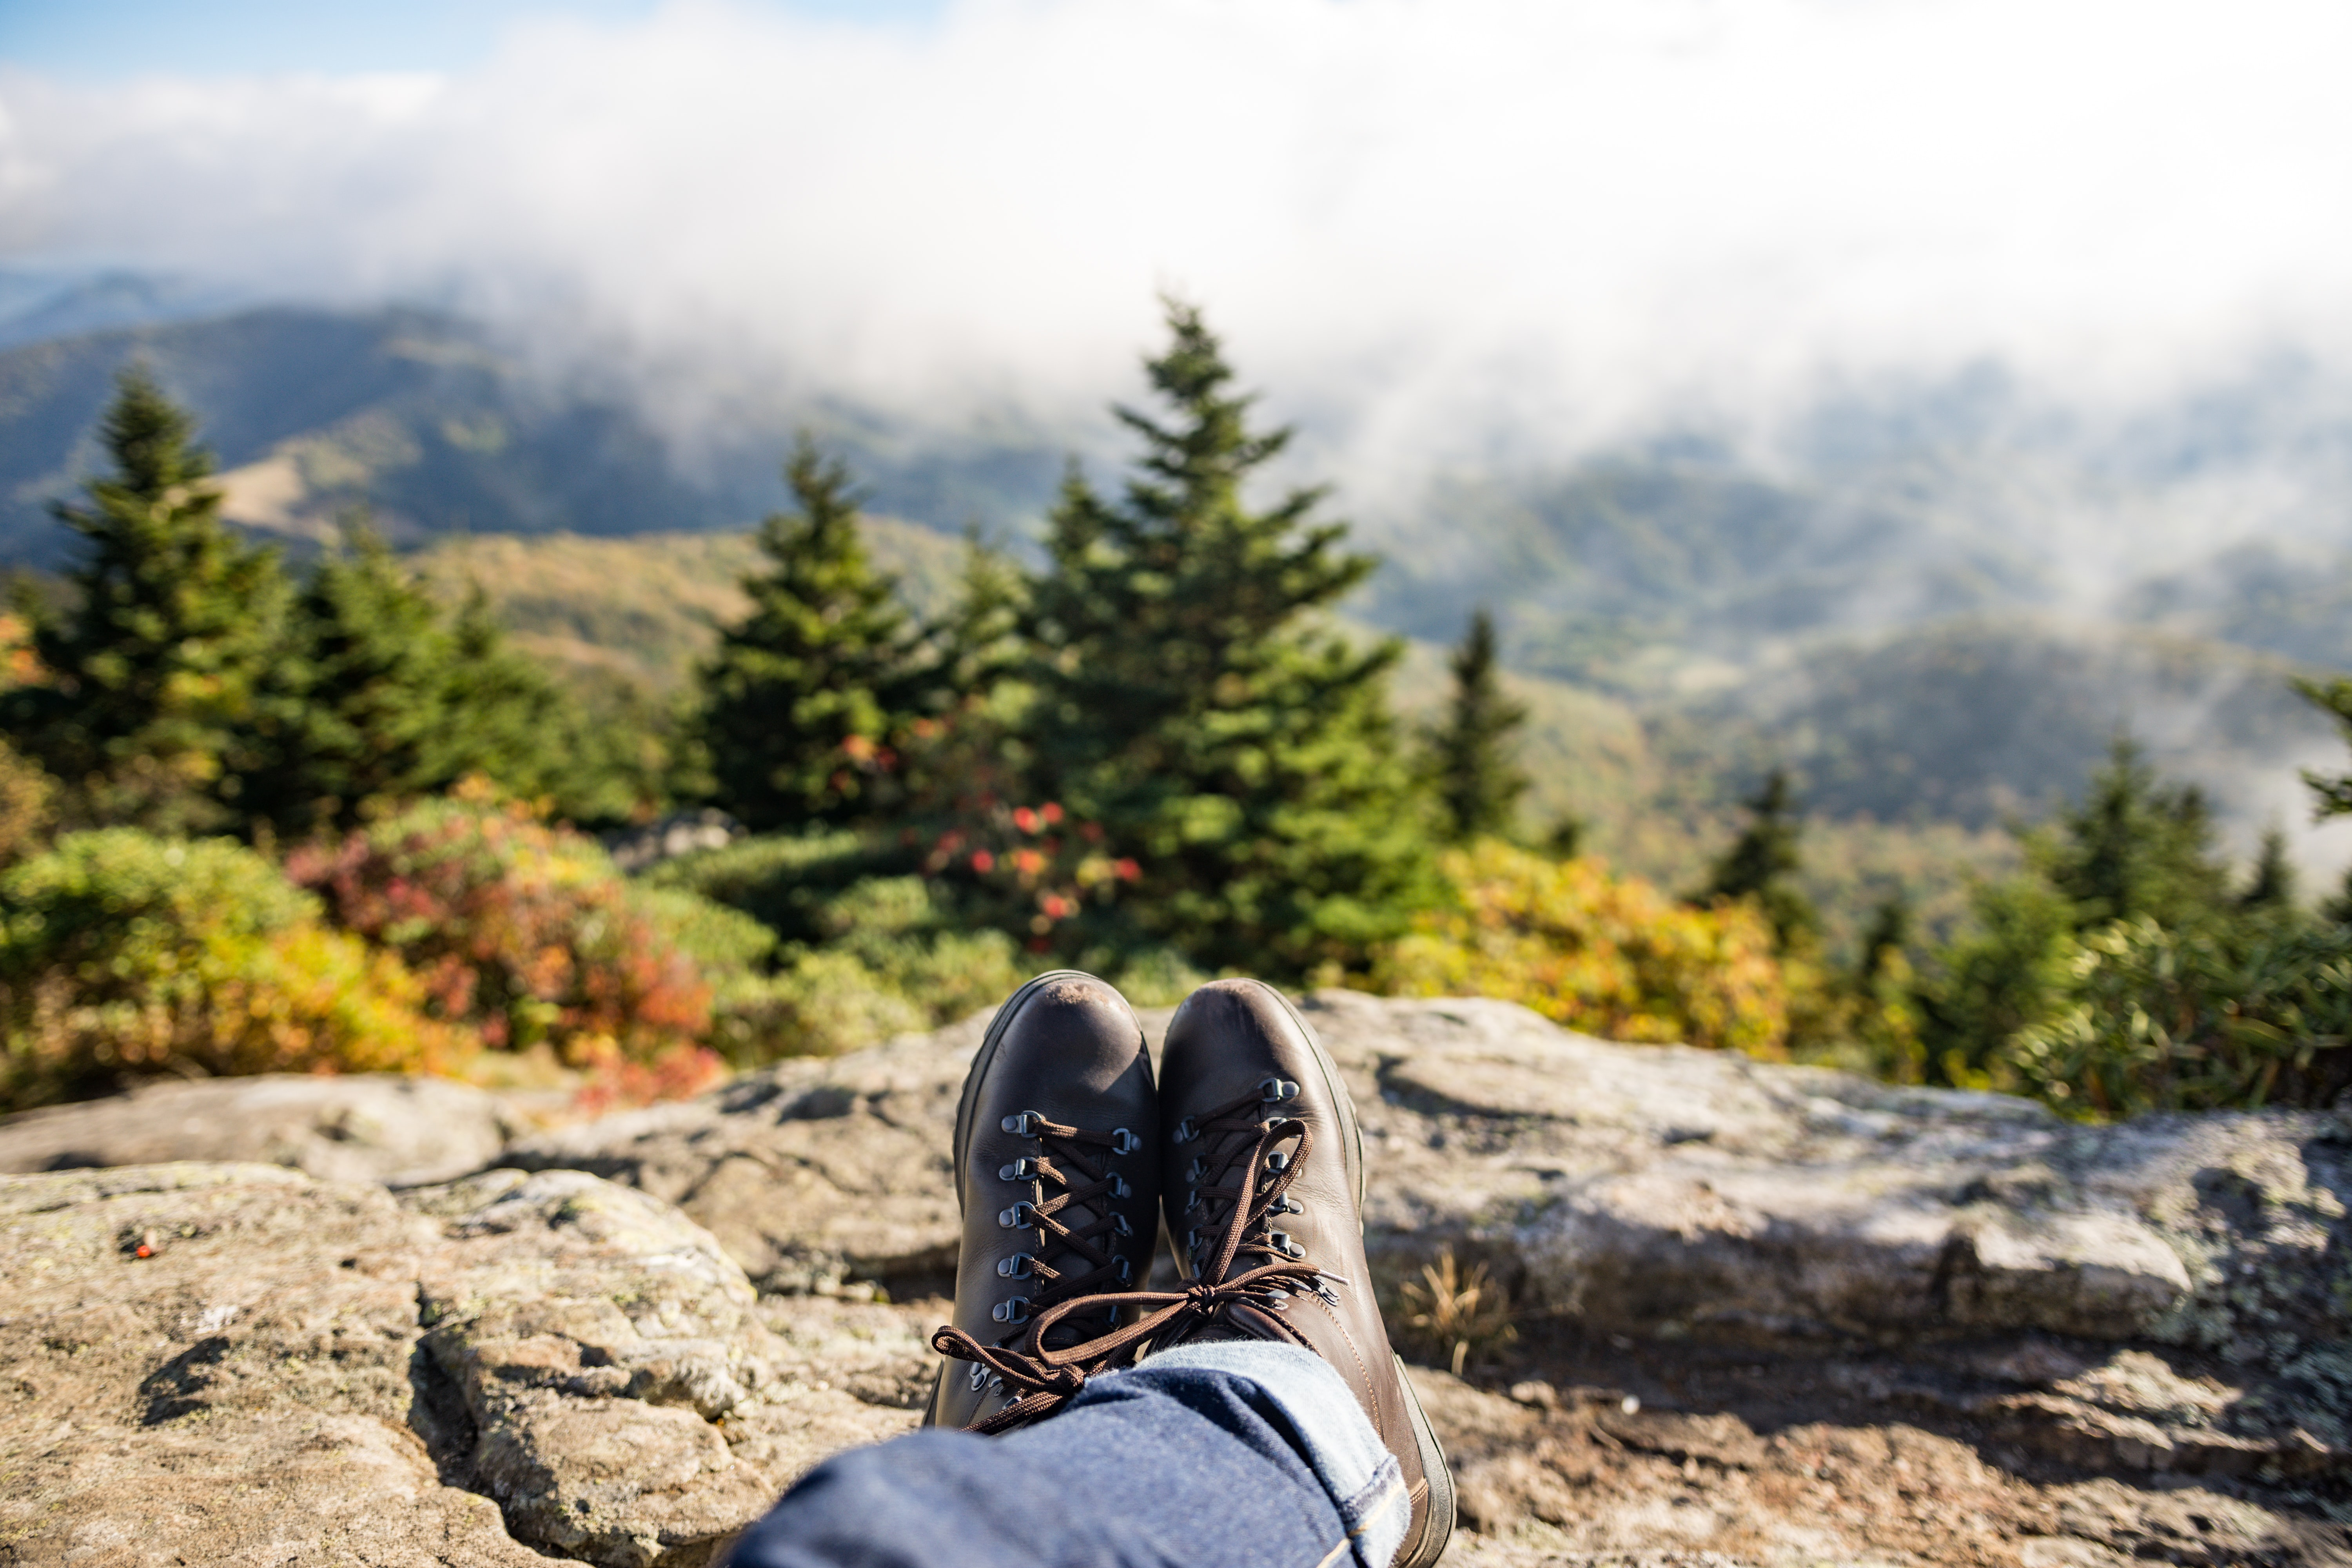 A person wearing hiking boots and jeans resting on a rock looking out into the fog covered mountains